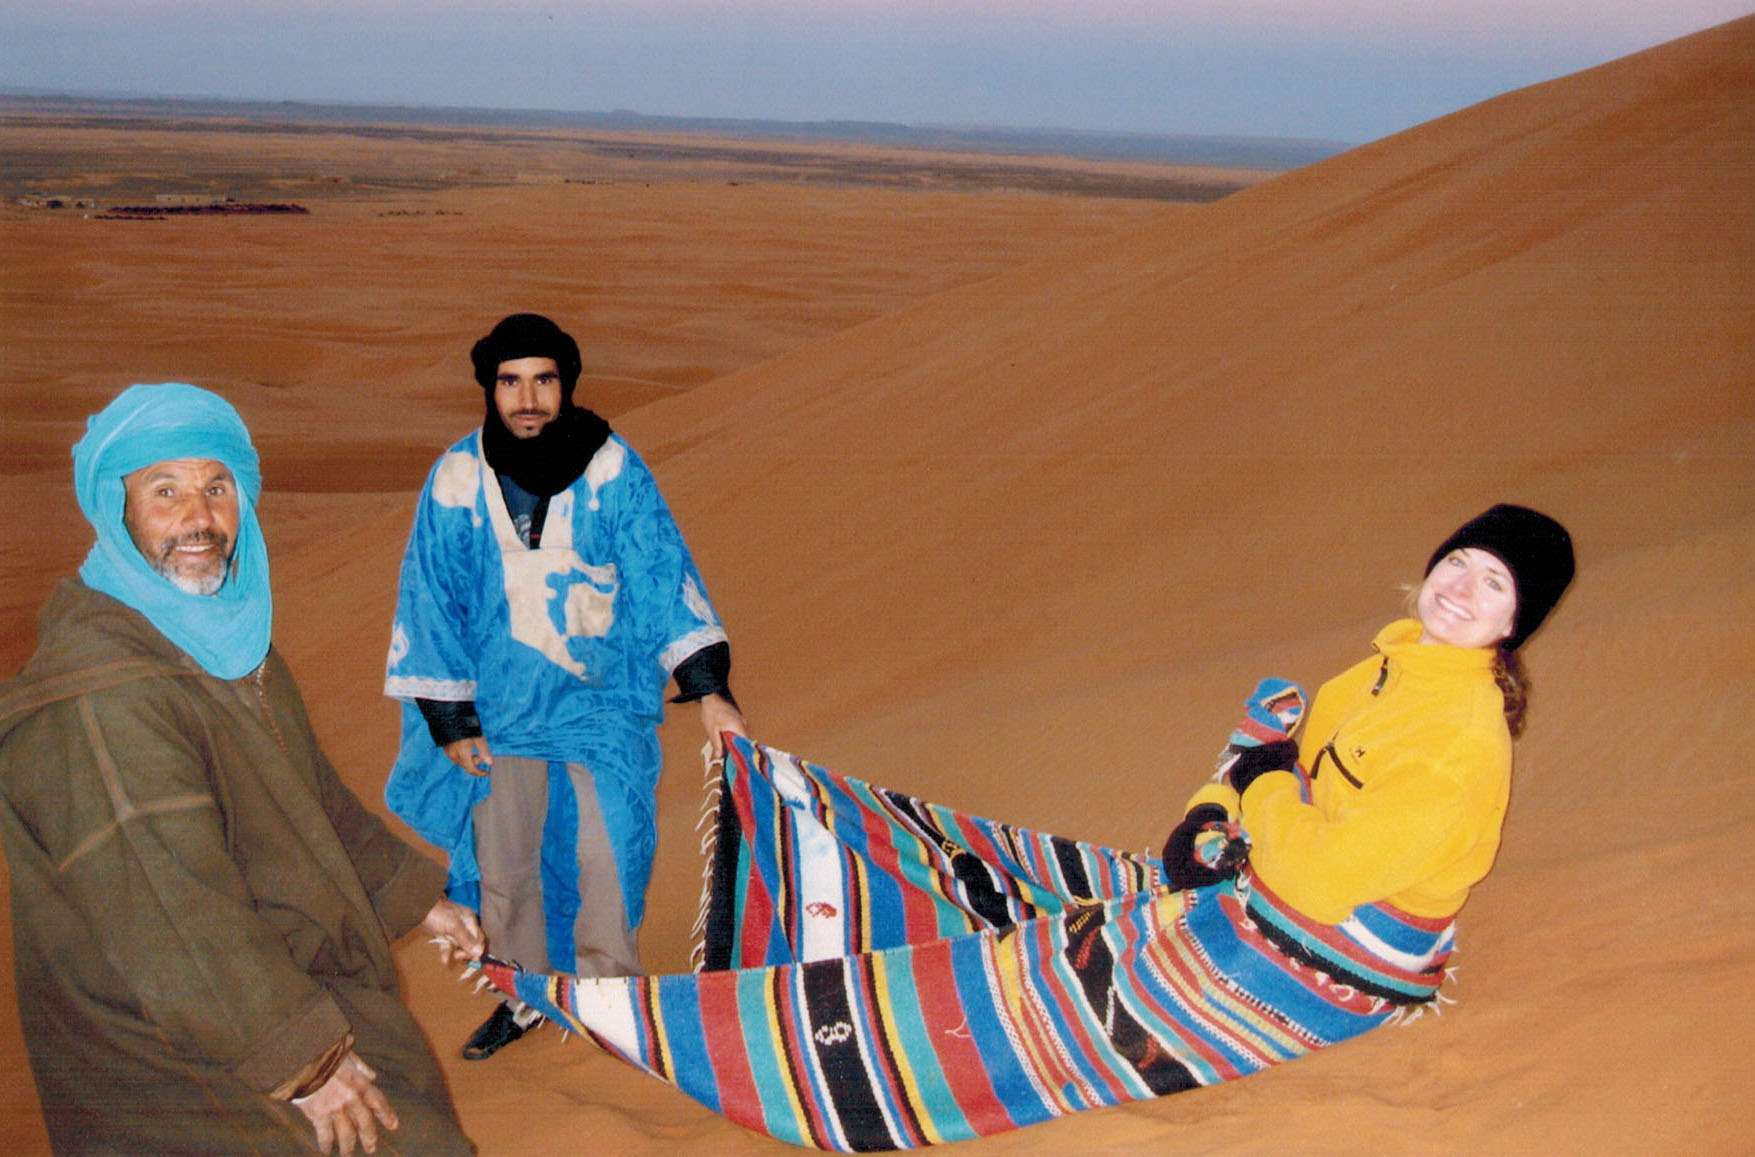 Christi with Berber guides ready for a magic carpet ride in the Morocco dunes